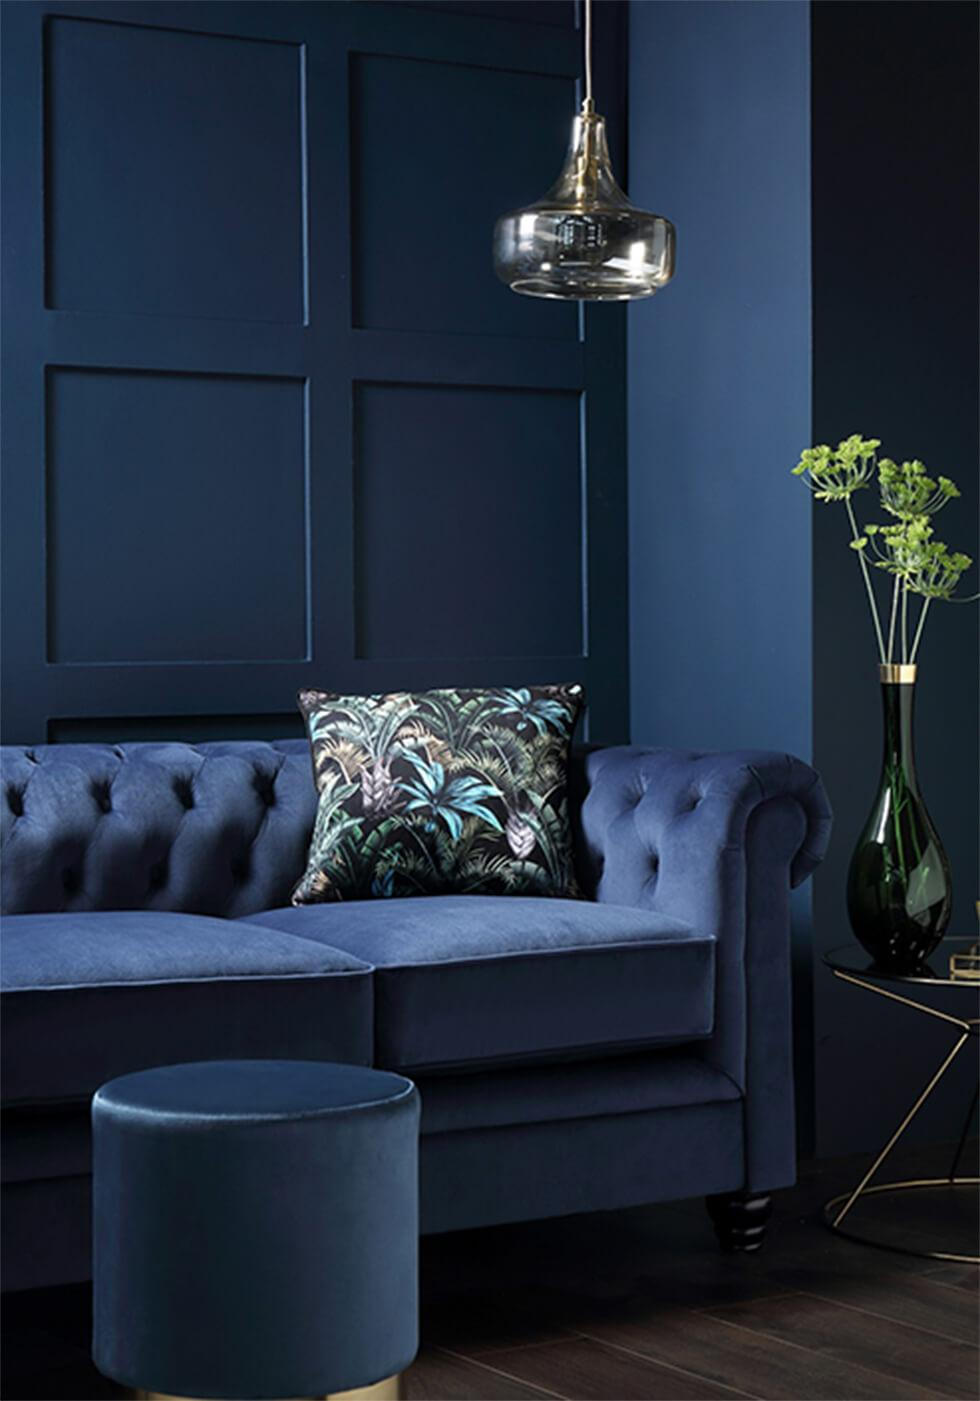 8 Ways To Style The Chesterfield Sofa Inspiration Furniture And Choice